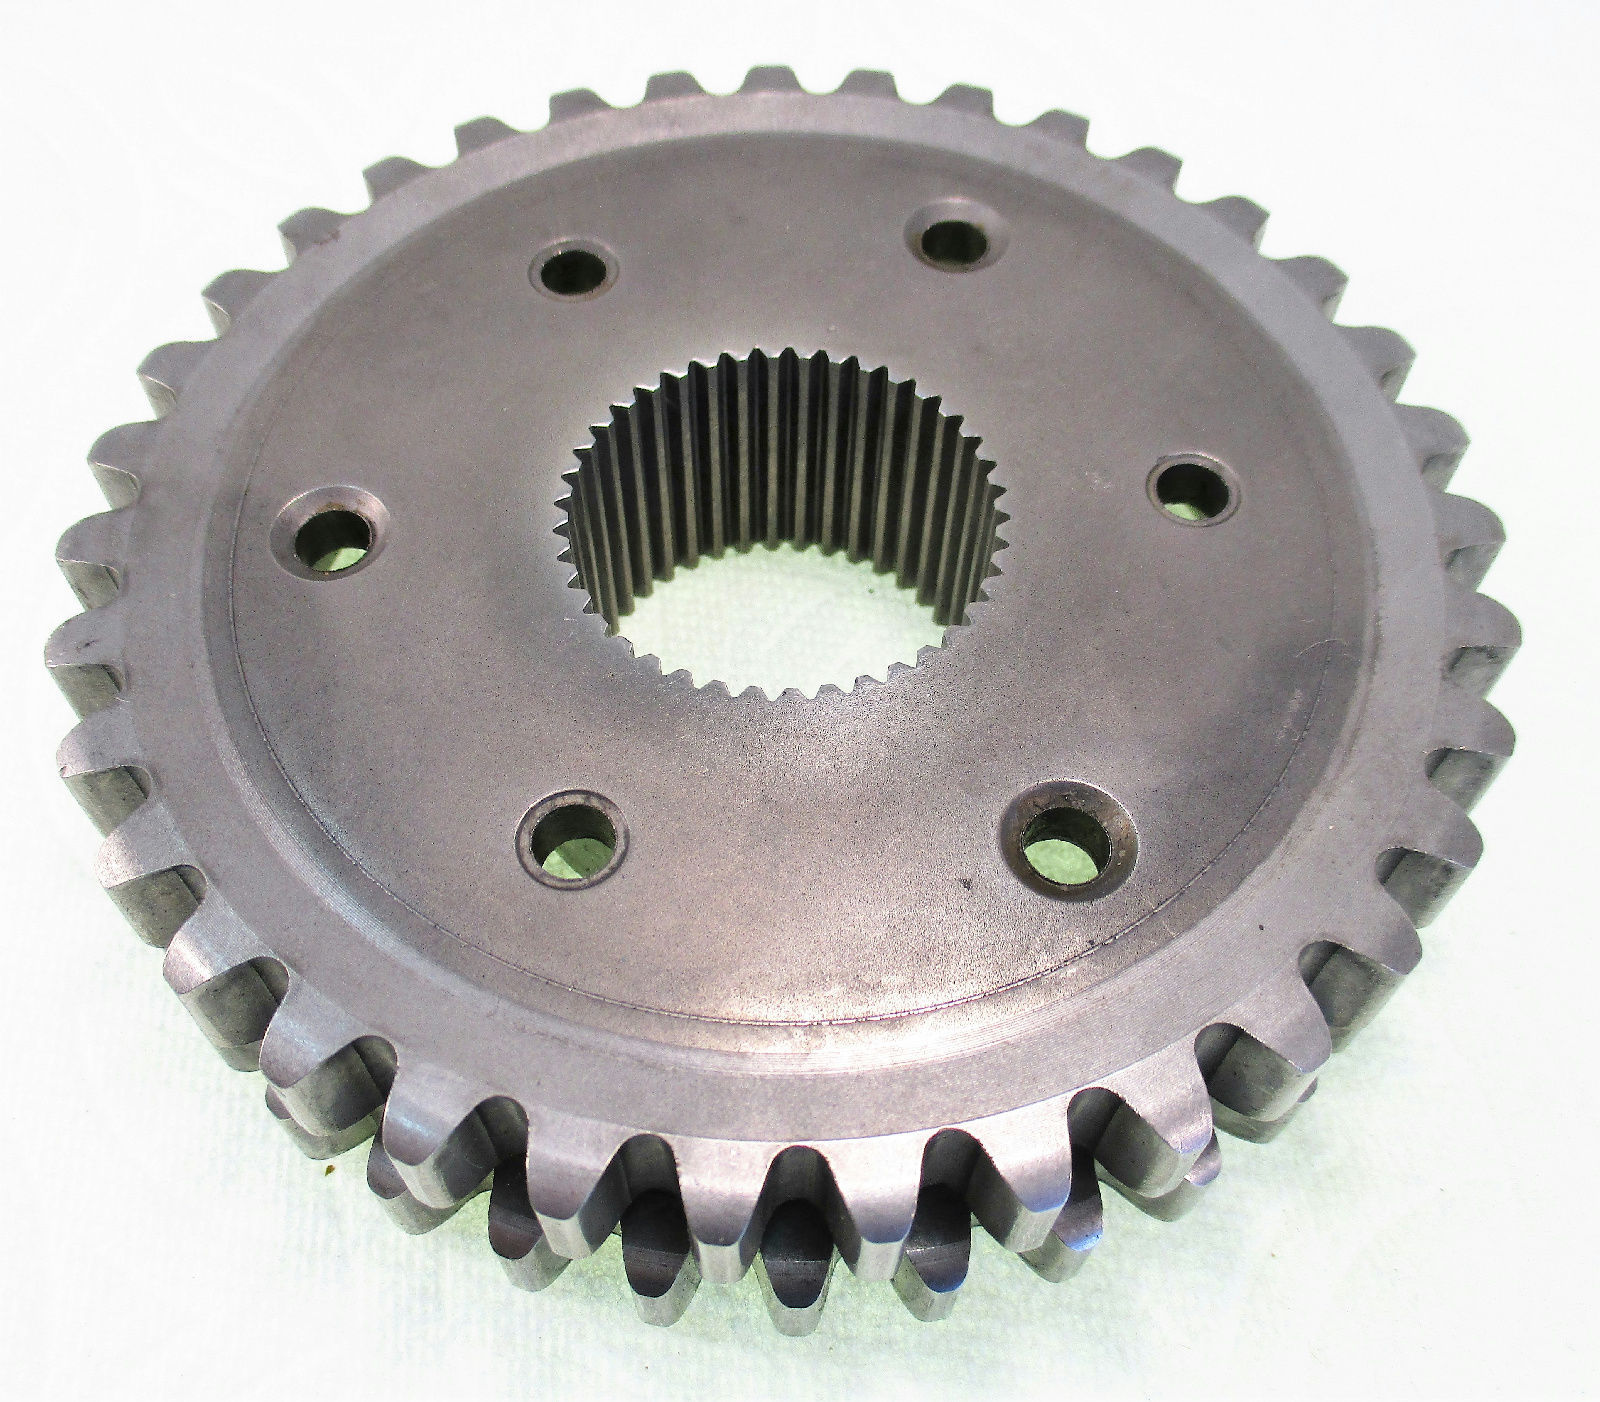 GM ACDelco Original 24216063 Drive Sprocket 35T General Motors New